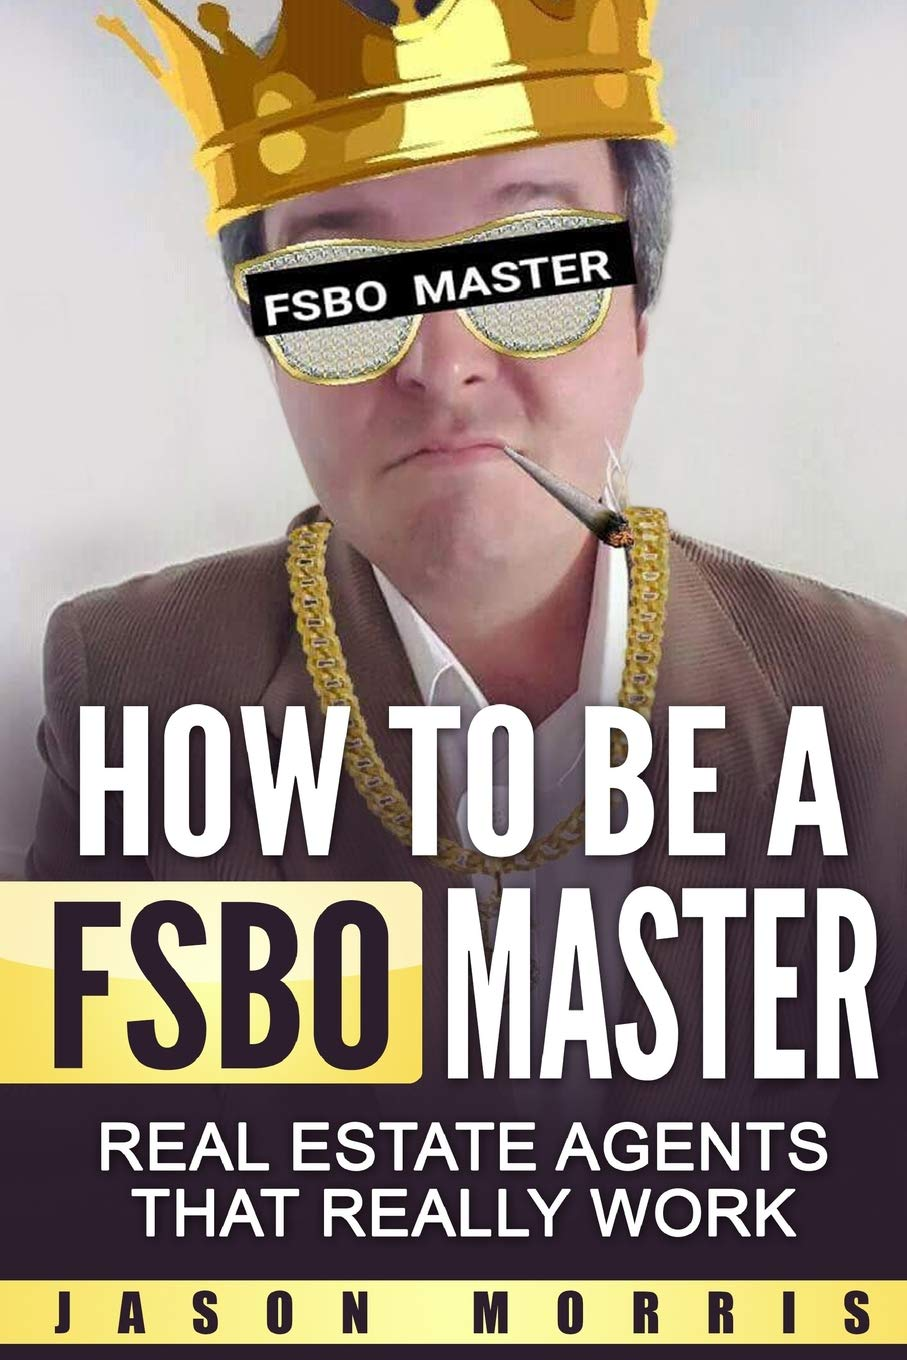 How to be a FSBO Master: Real Estate agents that REALLY work: Jason Morris: 9781521243572: Amazon.com: Books